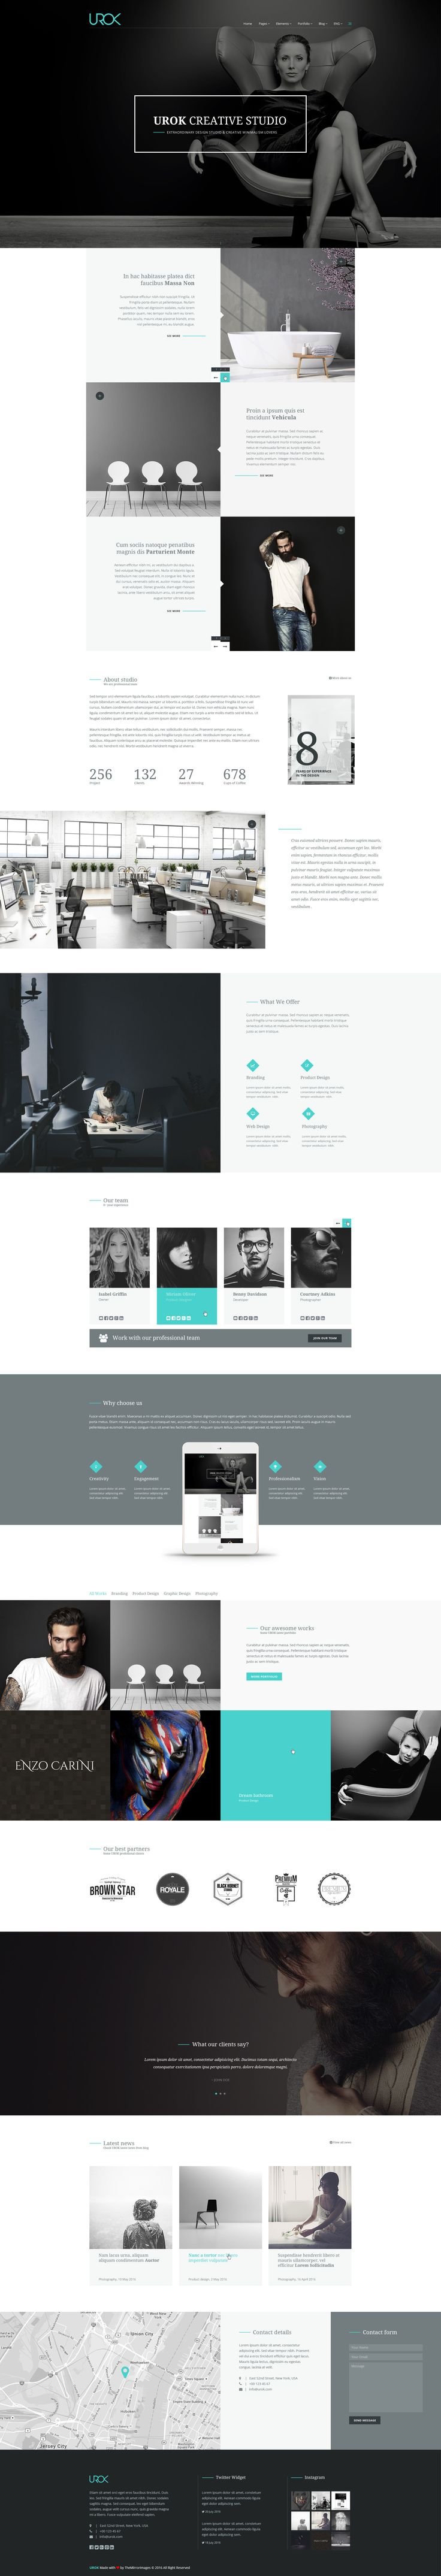 UROK - Creative Multipurpose PSD Template by TheMirrorImages | ThemeForest